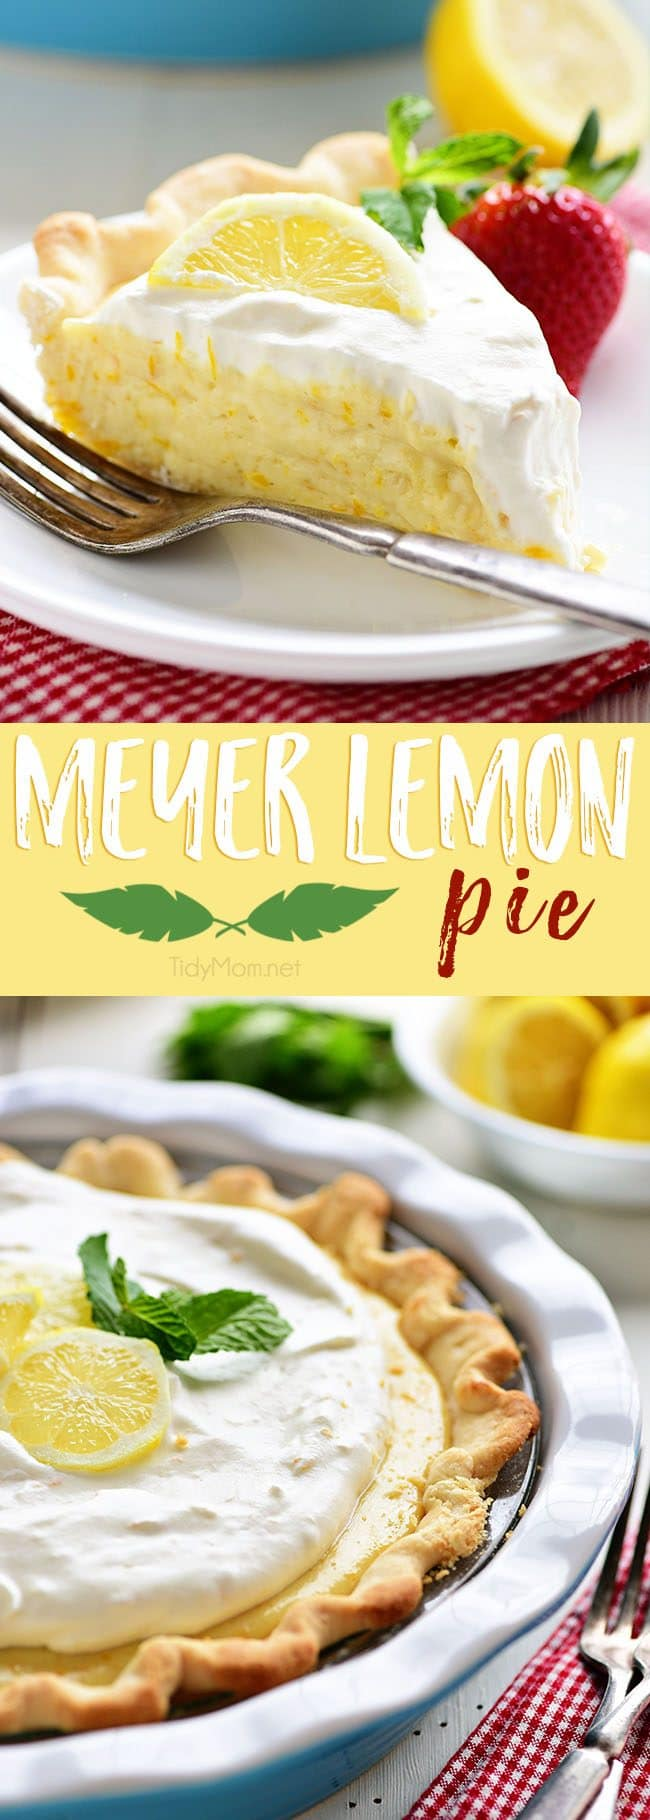 Meyer Lemon Pie photo collage